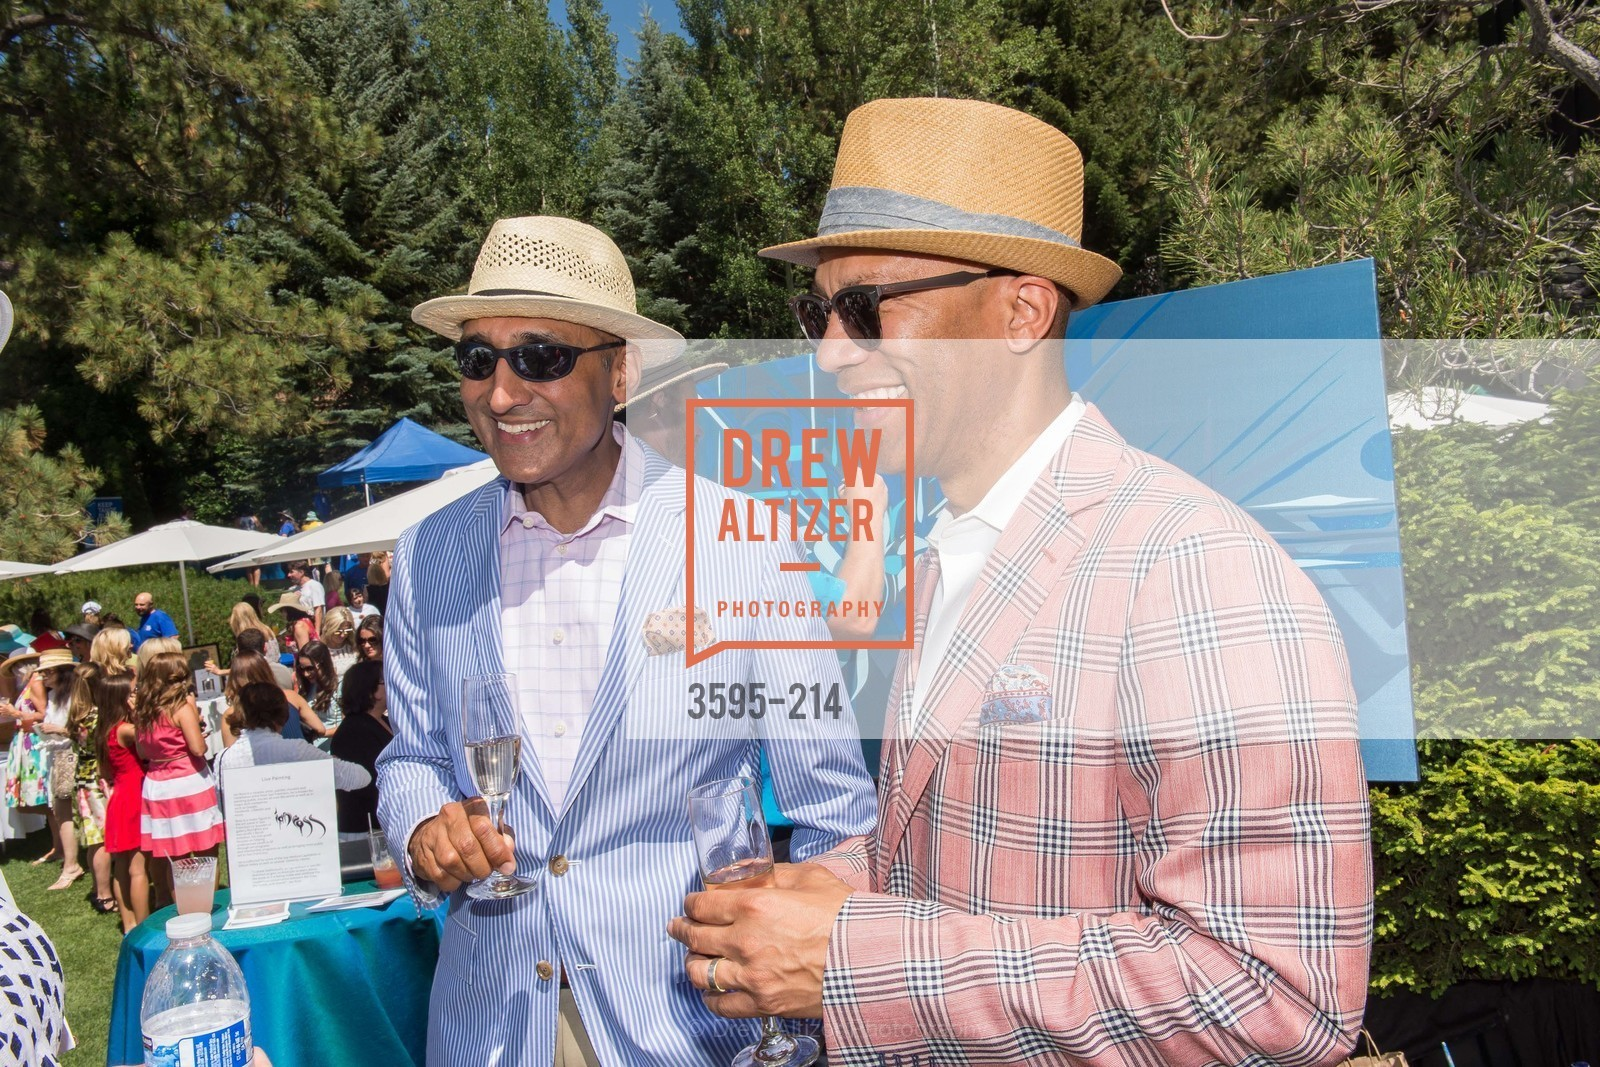 Inder Dhillon, Ken McNeely, Saks Fifth Avenue and The League to Save Lake Tahoe Present Fashion on the Lake, Private Residence, August 1st, 2015,Drew Altizer, Drew Altizer Photography, full-service agency, private events, San Francisco photographer, photographer california